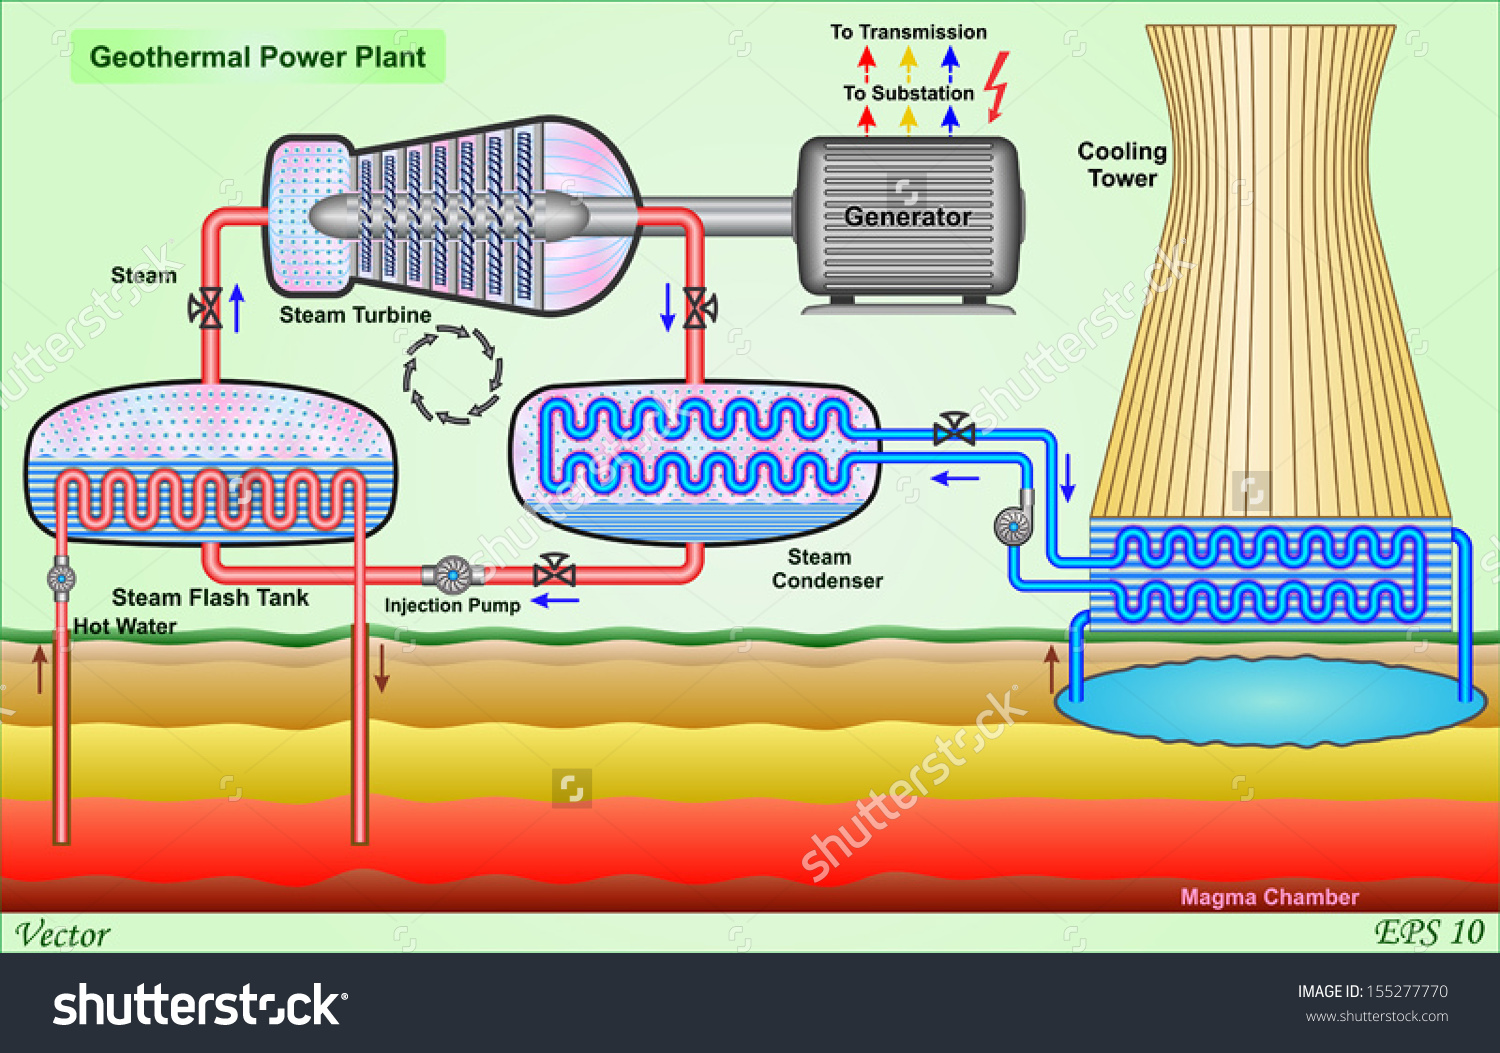 hight resolution of geothermal power plant stock vector 155277770